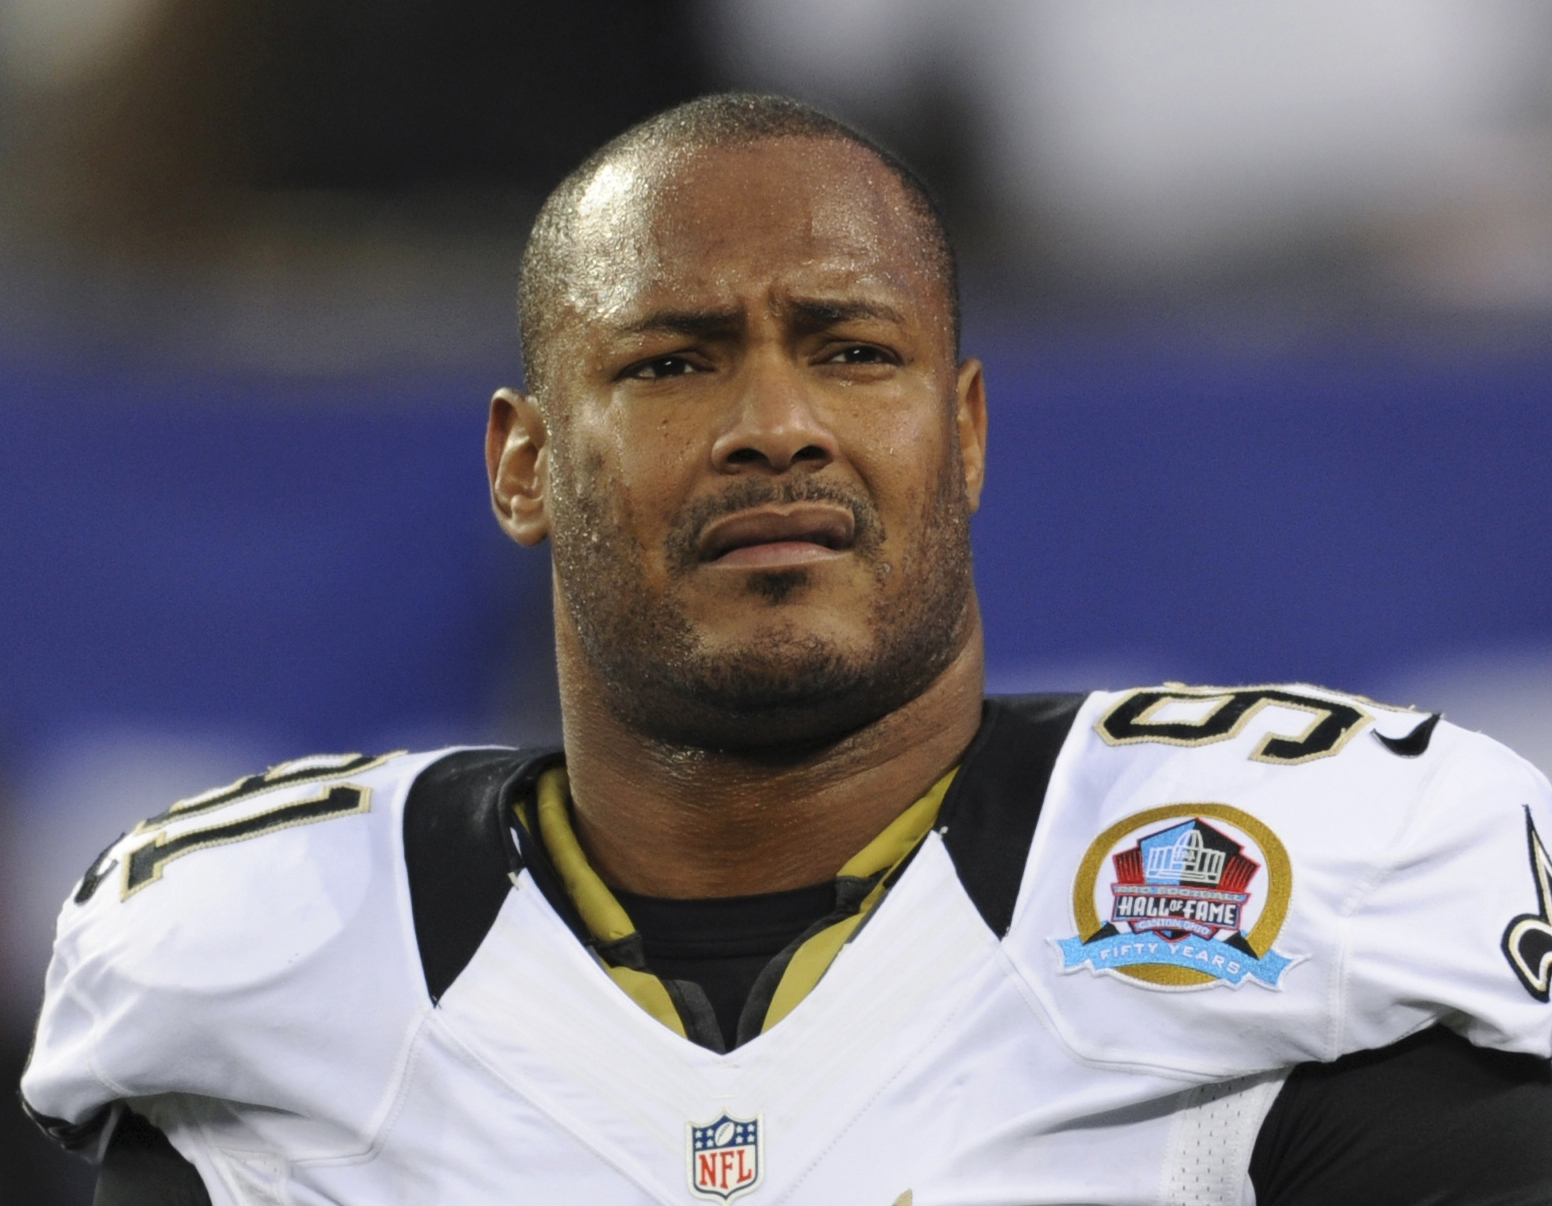 FILE - In this Dec. 9, 2012, file photo, New Orleans Saints defensive end Will Smith appears before an NFL football game against the New York Giants in East Rutherford, N.J. Prosecutors will have to present witnesses against the man accused of killing ret